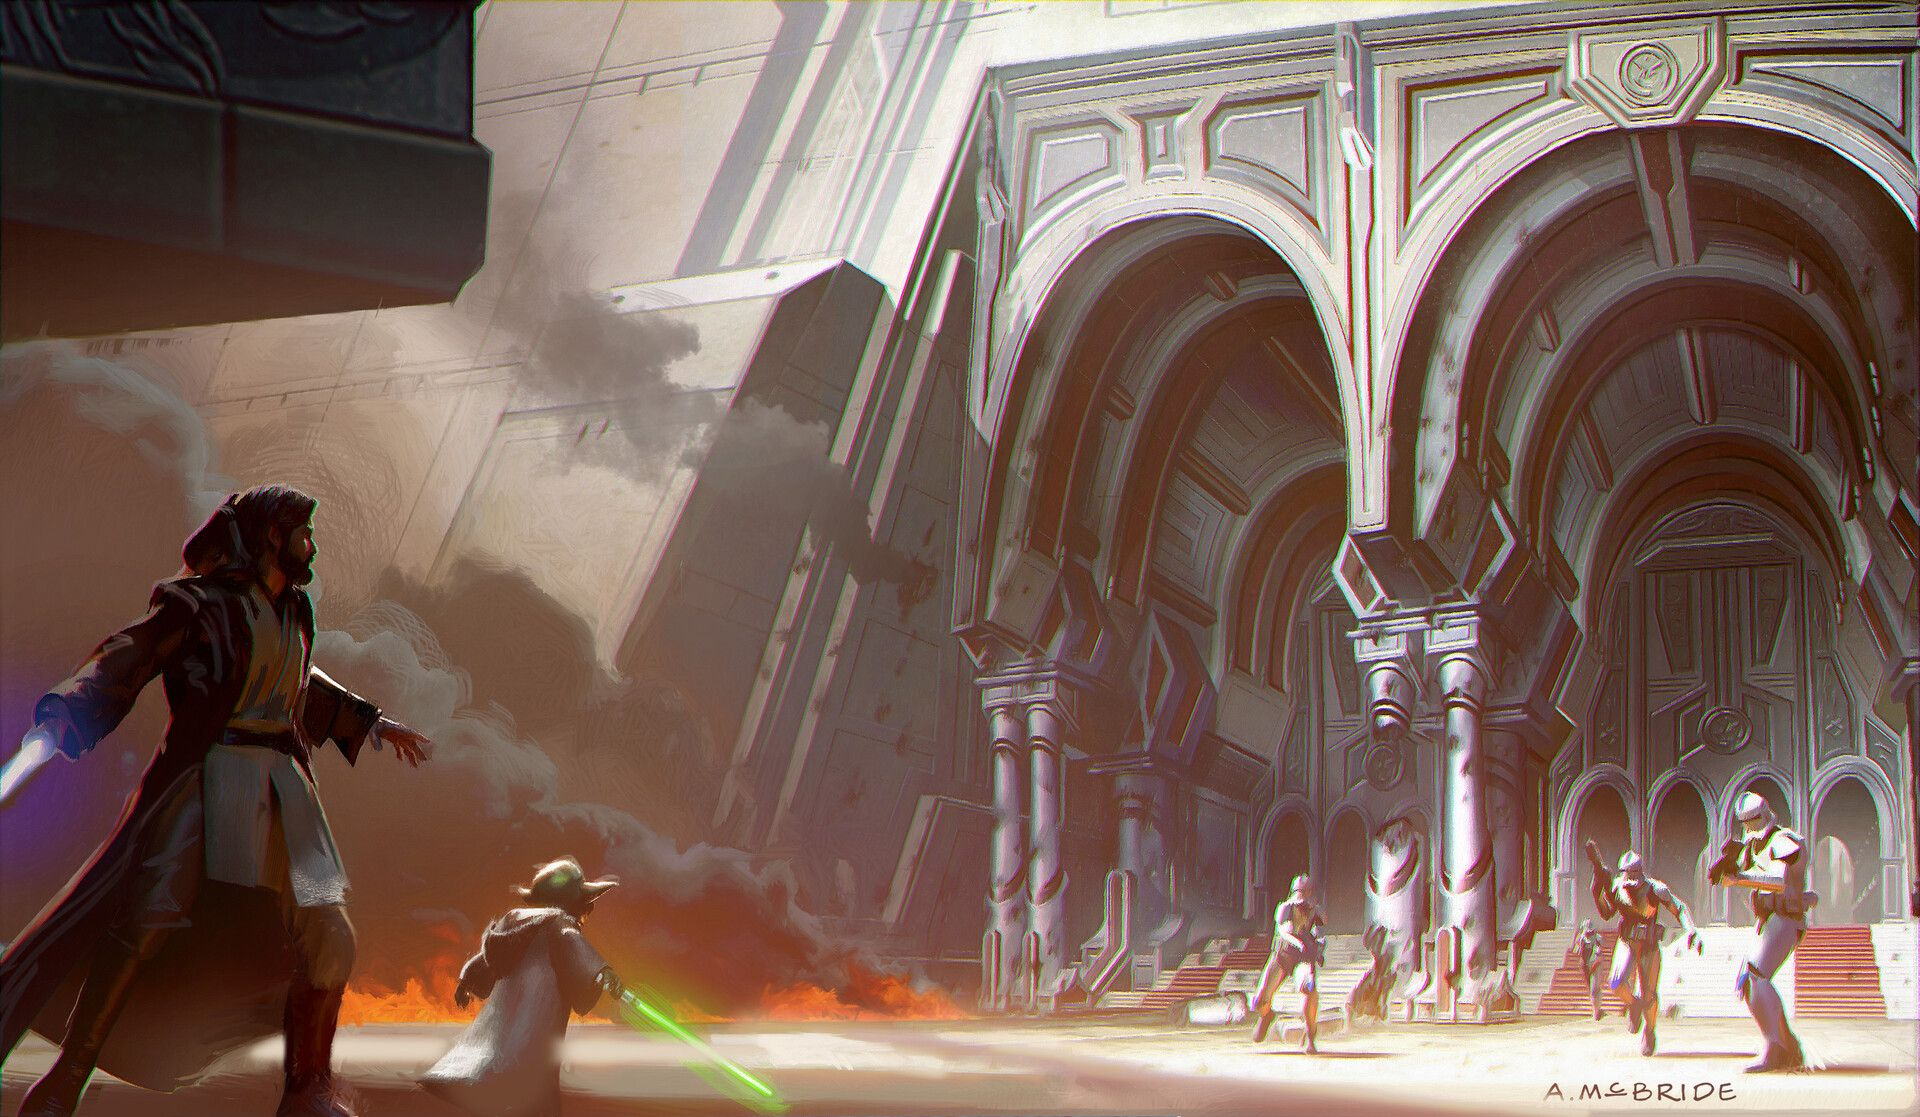 Star Wars Revenge Of The Sith 2005 Jedi Temple Ground Entrance Interior Concept By Aaron Mcbride In 2020 Sith Star Wars Characters Star Wars